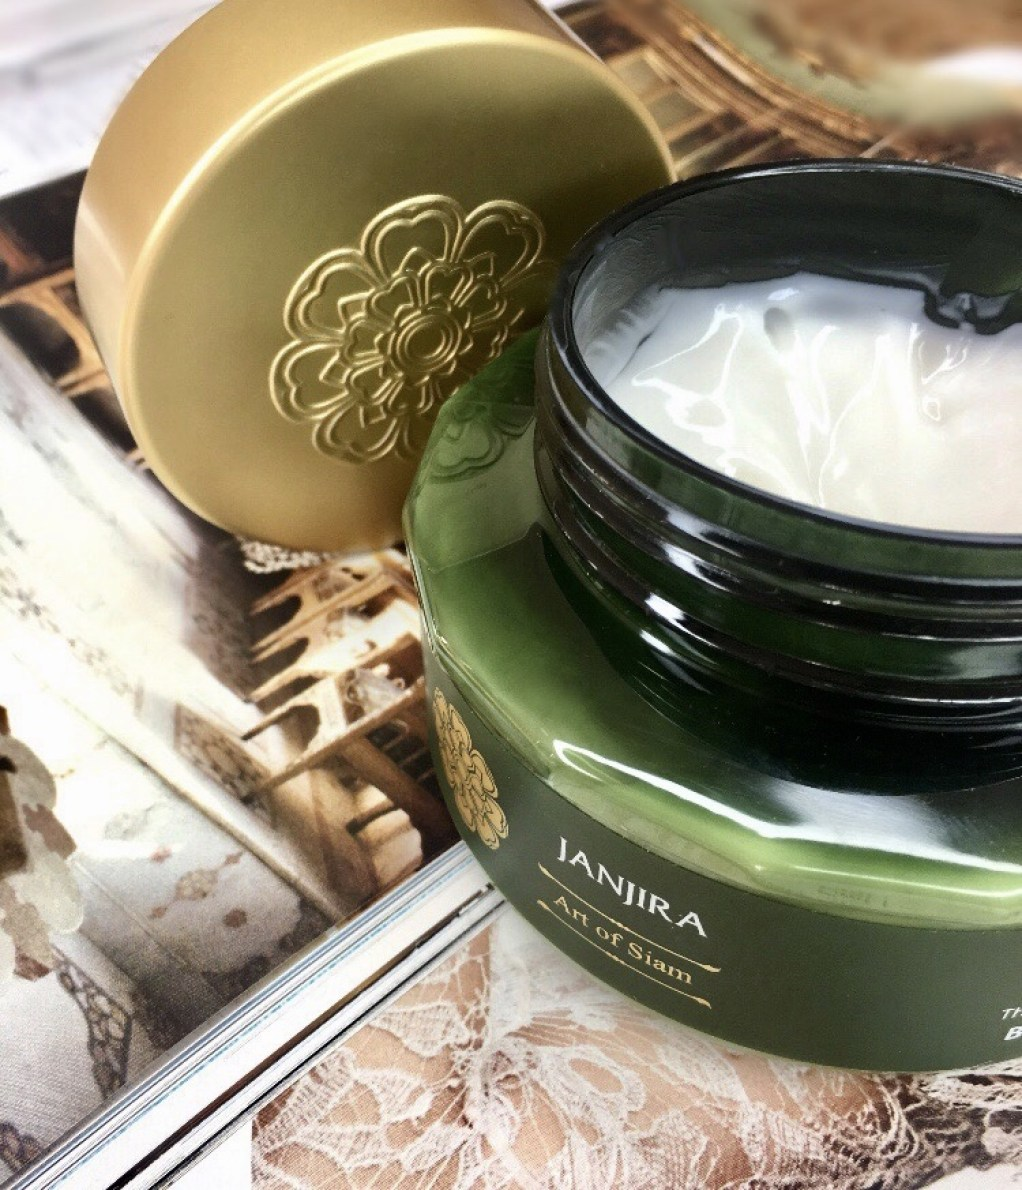 Showing Janjira body butter consistency